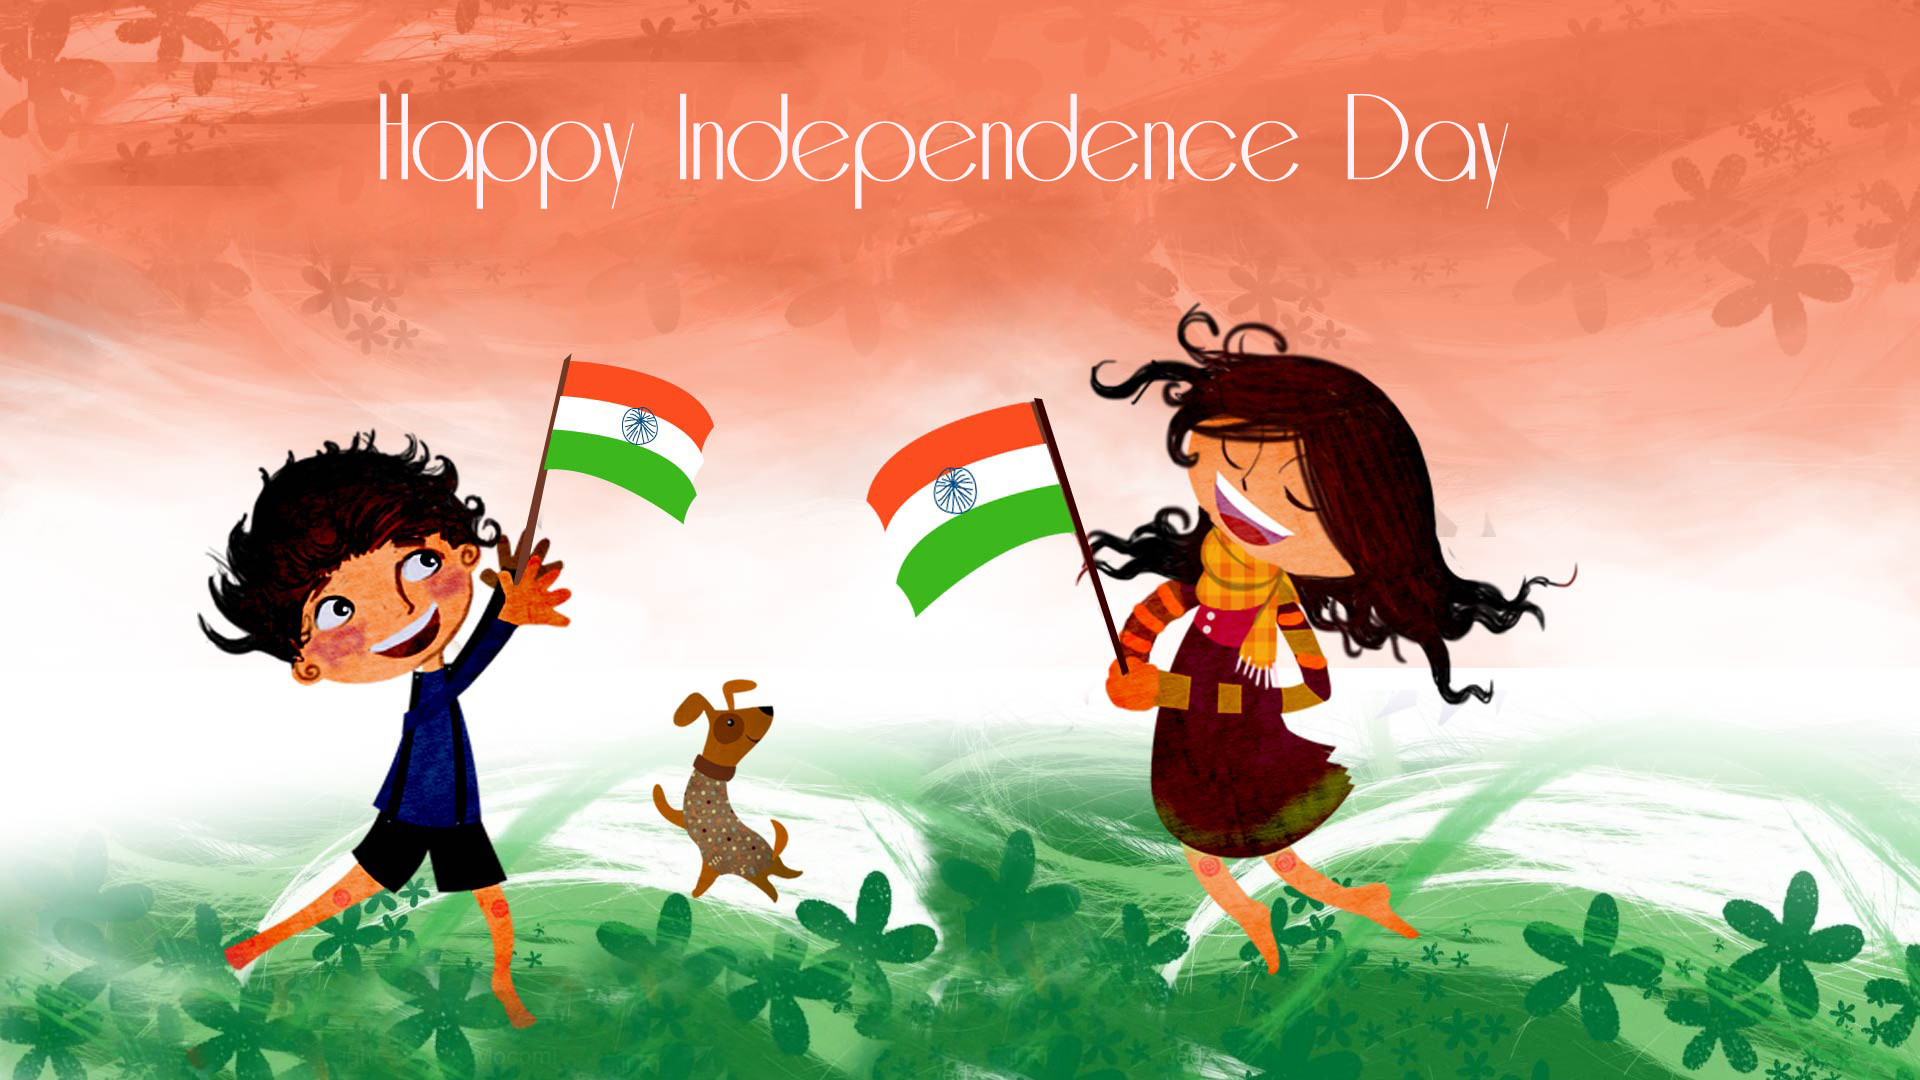 1920x1080 happy independence day dp profile pictures for whatsapp facebook